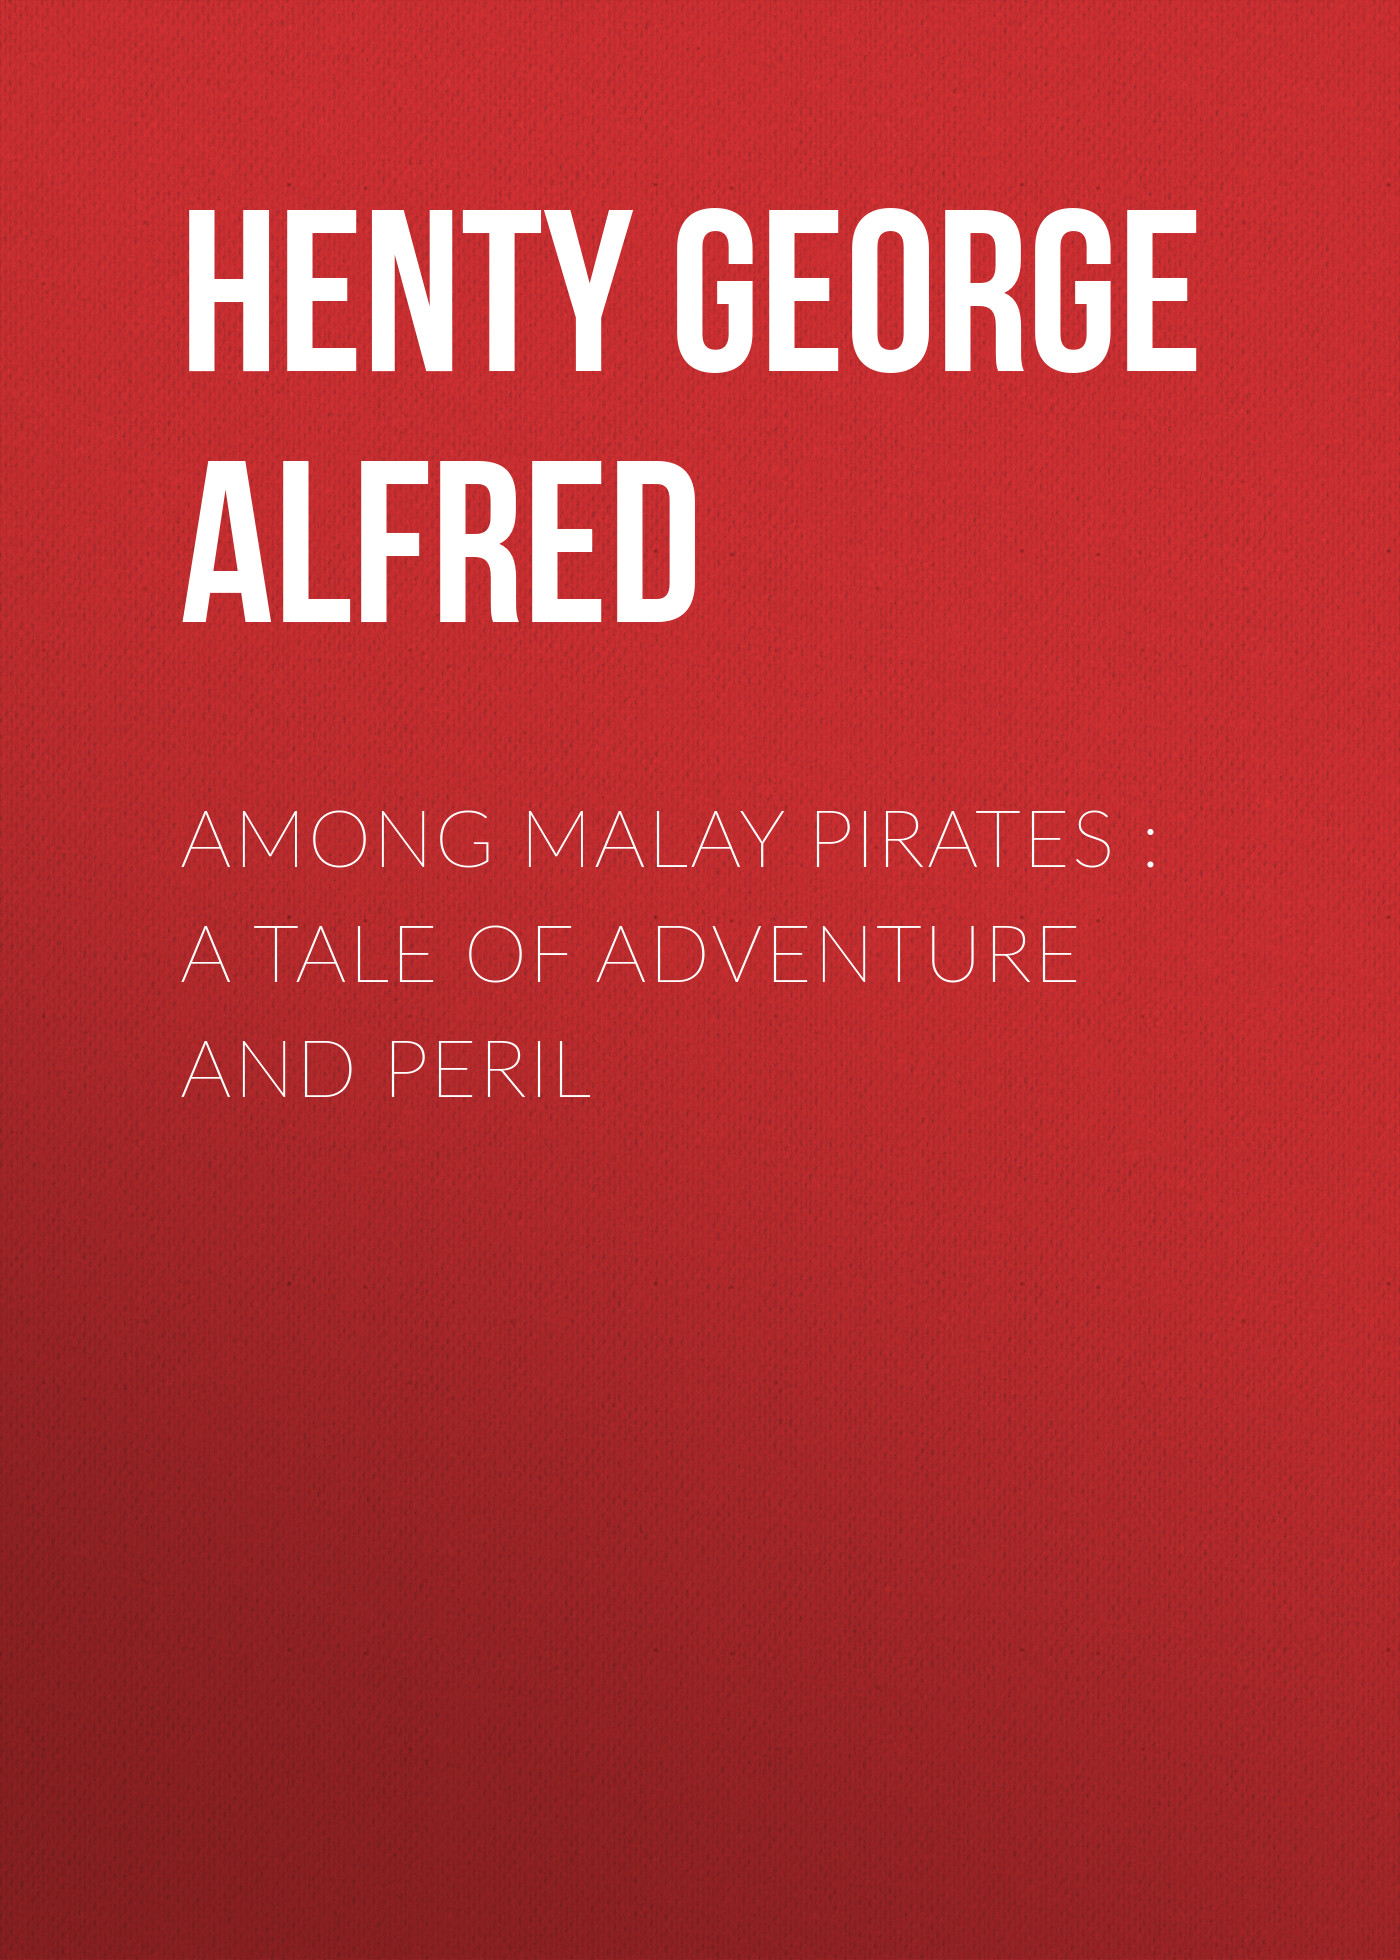 Henty George Alfred Among Malay Pirates : a Tale of Adventure and Peril